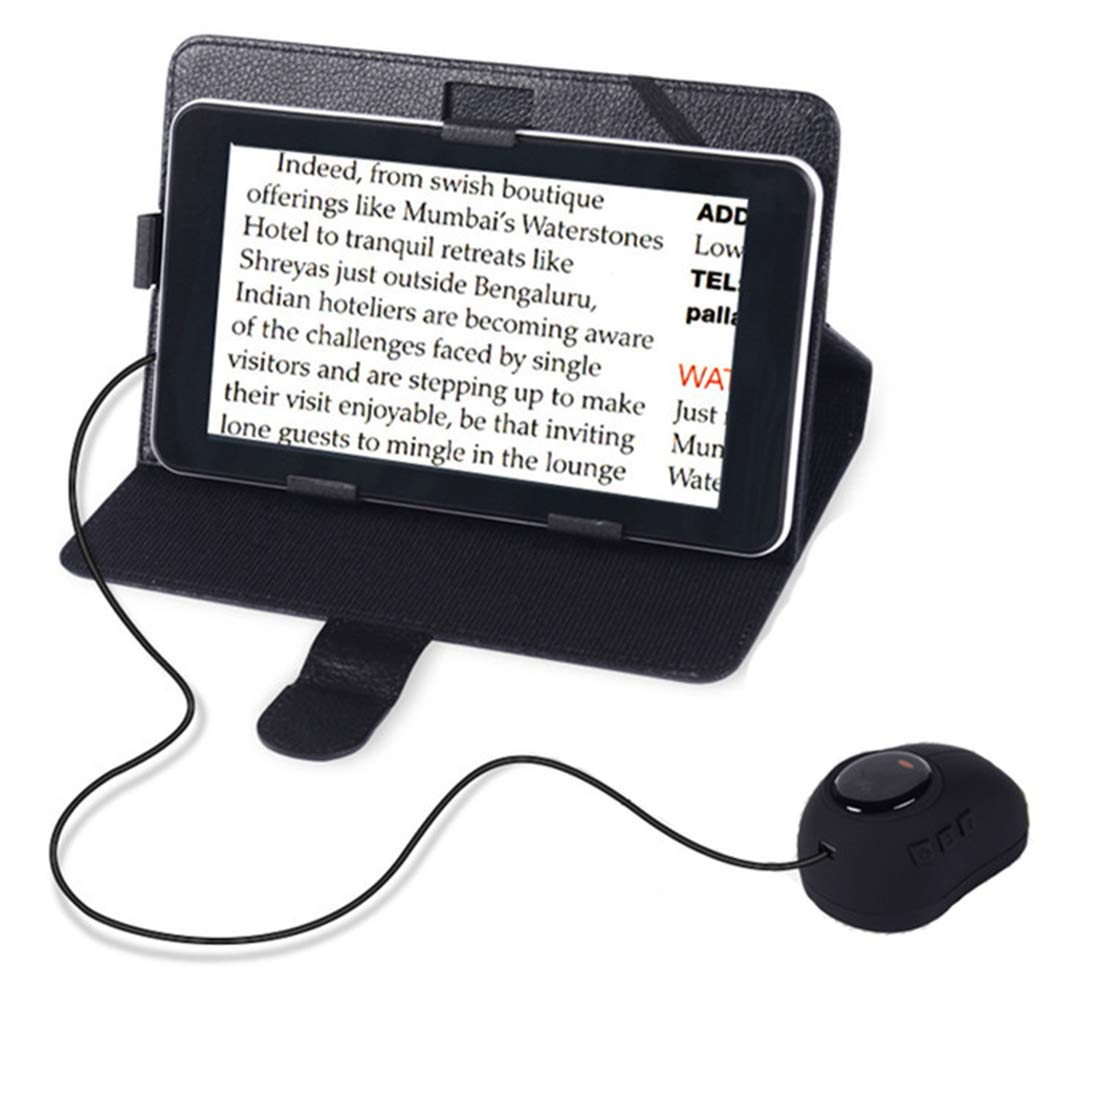 7-Inch Video Magnifier LCD Portable Electronic Visual Aid 3x-60x Zoom, Handheld Electronic Reading Aid for Low Vision Impaired, 12 Color Modes, AV/TV Output, Image Freeze